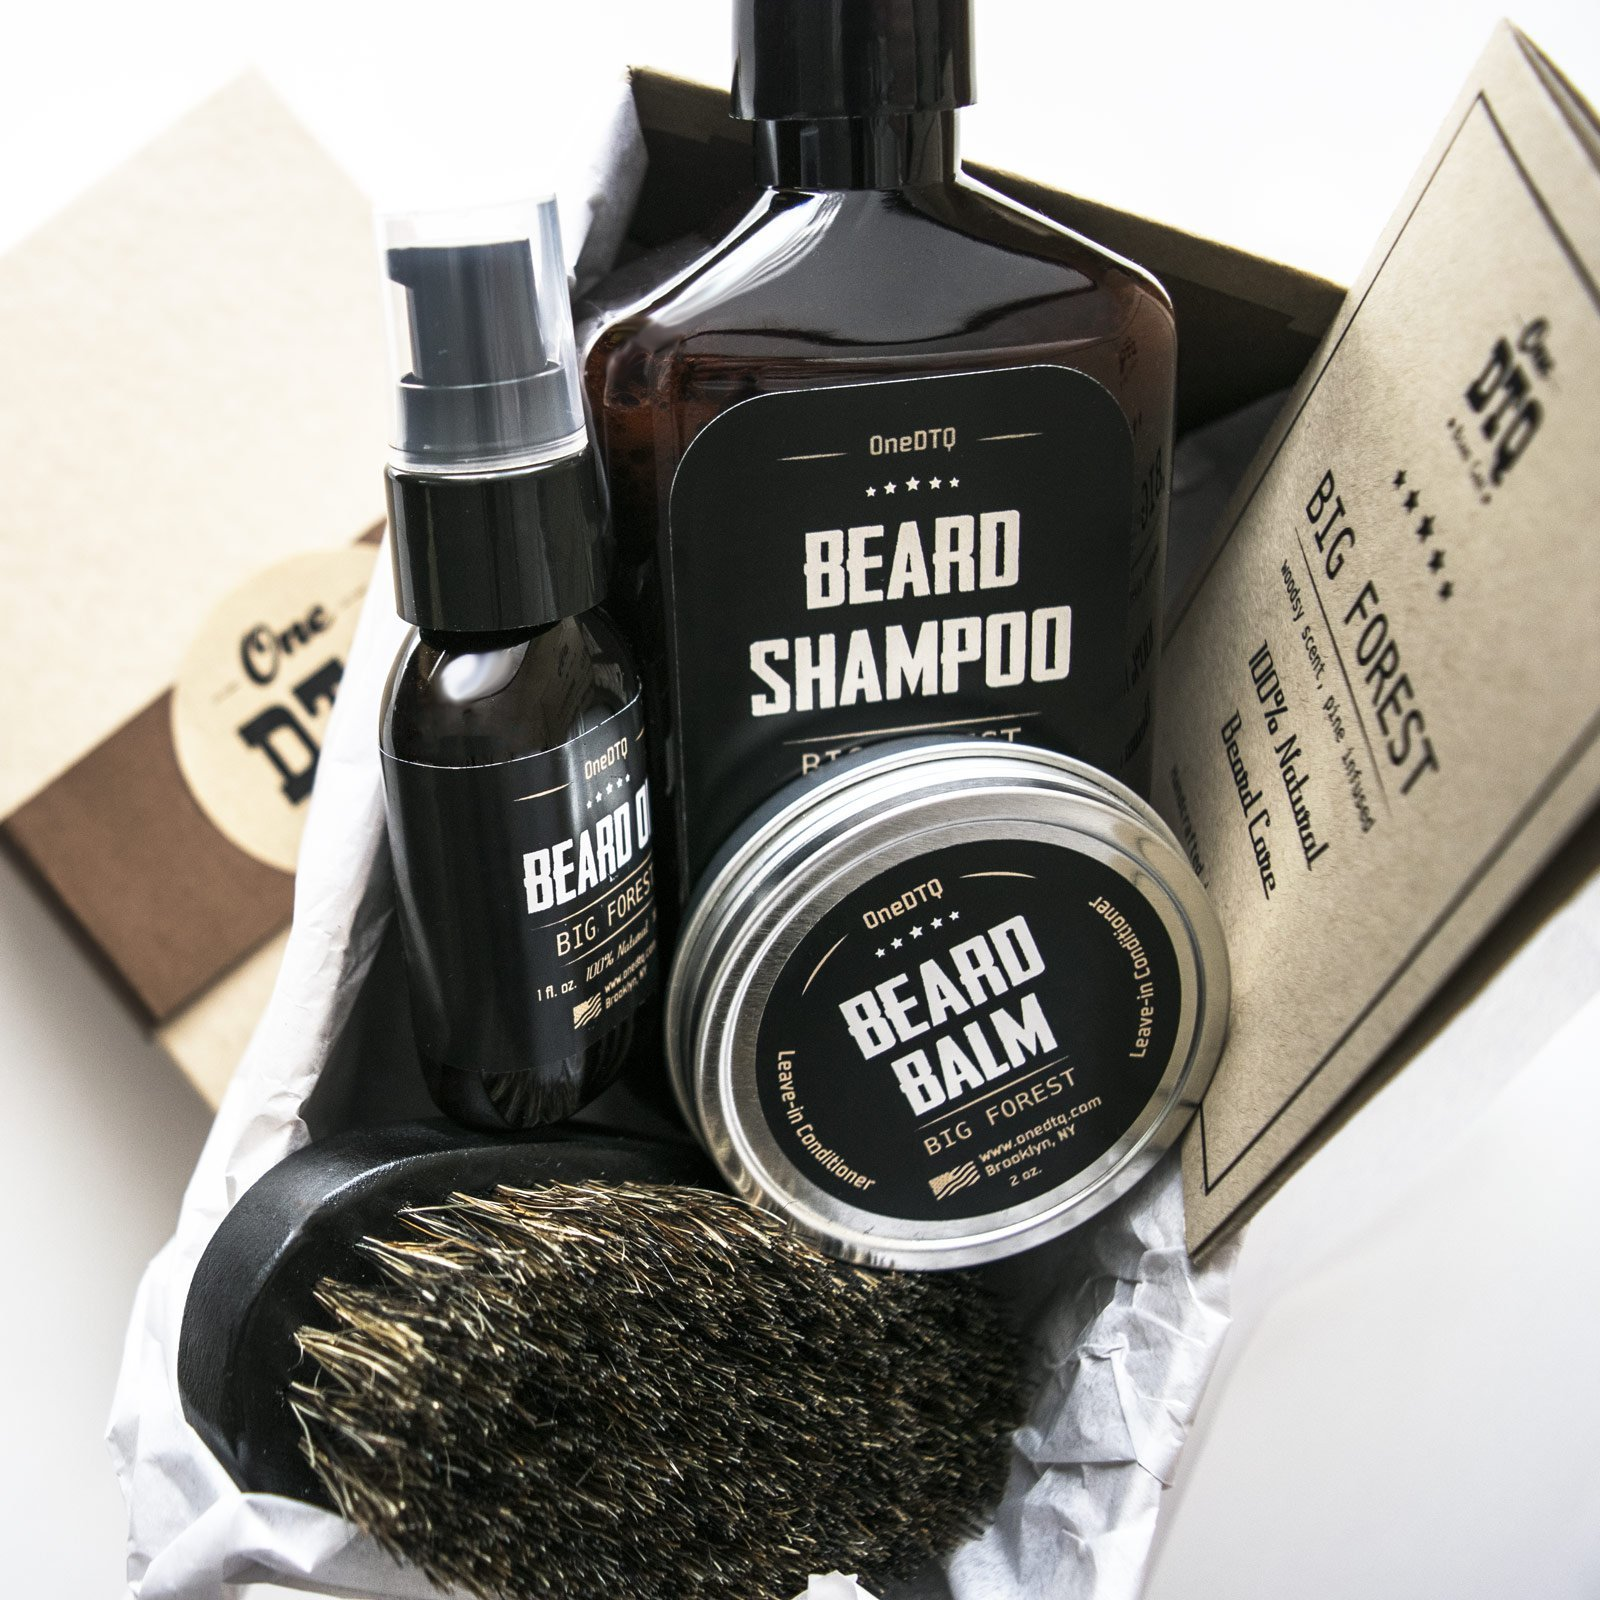 Big Forest Beard Grooming Kit - Shampoo 9 oz - Oil 1 oz - Beard Balm 2 oz - Brush - Wood Scent - 100% Natural and Organic Beard Growth Care Products in Premium Gift Box